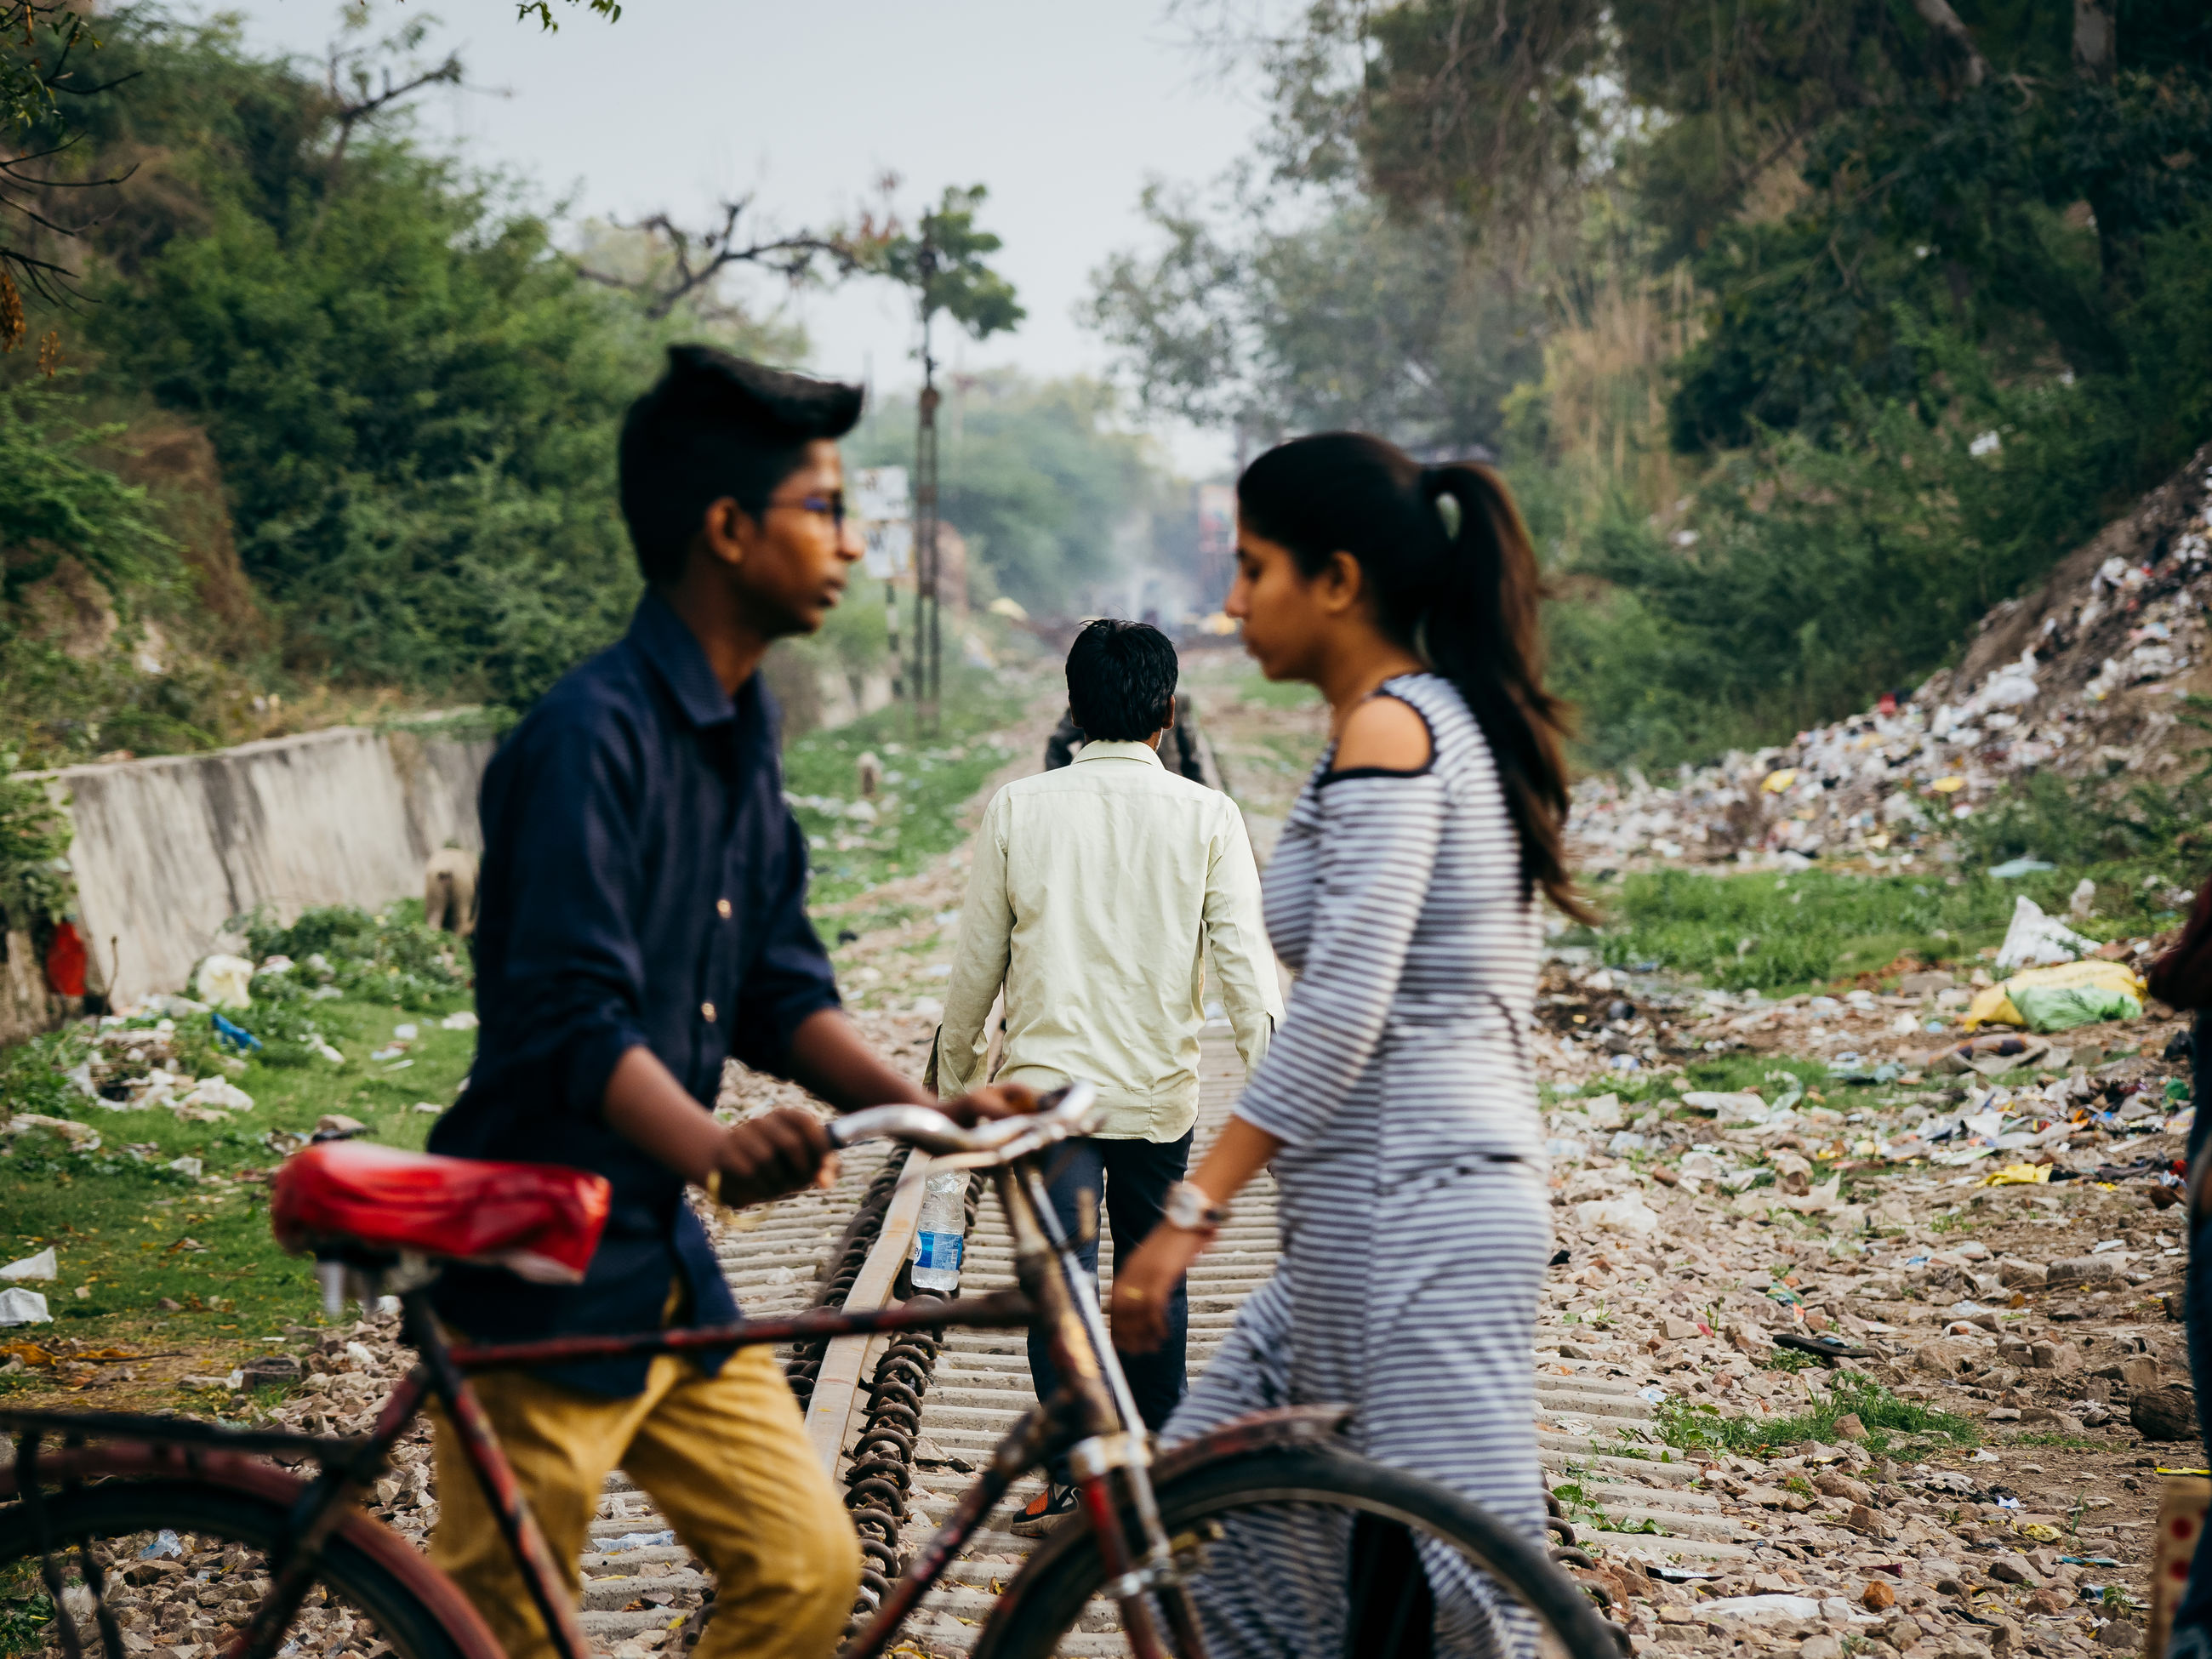 lifestyles, togetherness, real people, bicycle, men, casual clothing, transportation, bonding, adult, leisure activity, three quarter length, nature, two people, people, plant, women, land vehicle, tree, day, rear view, outdoors, positive emotion, riding, couple - relationship